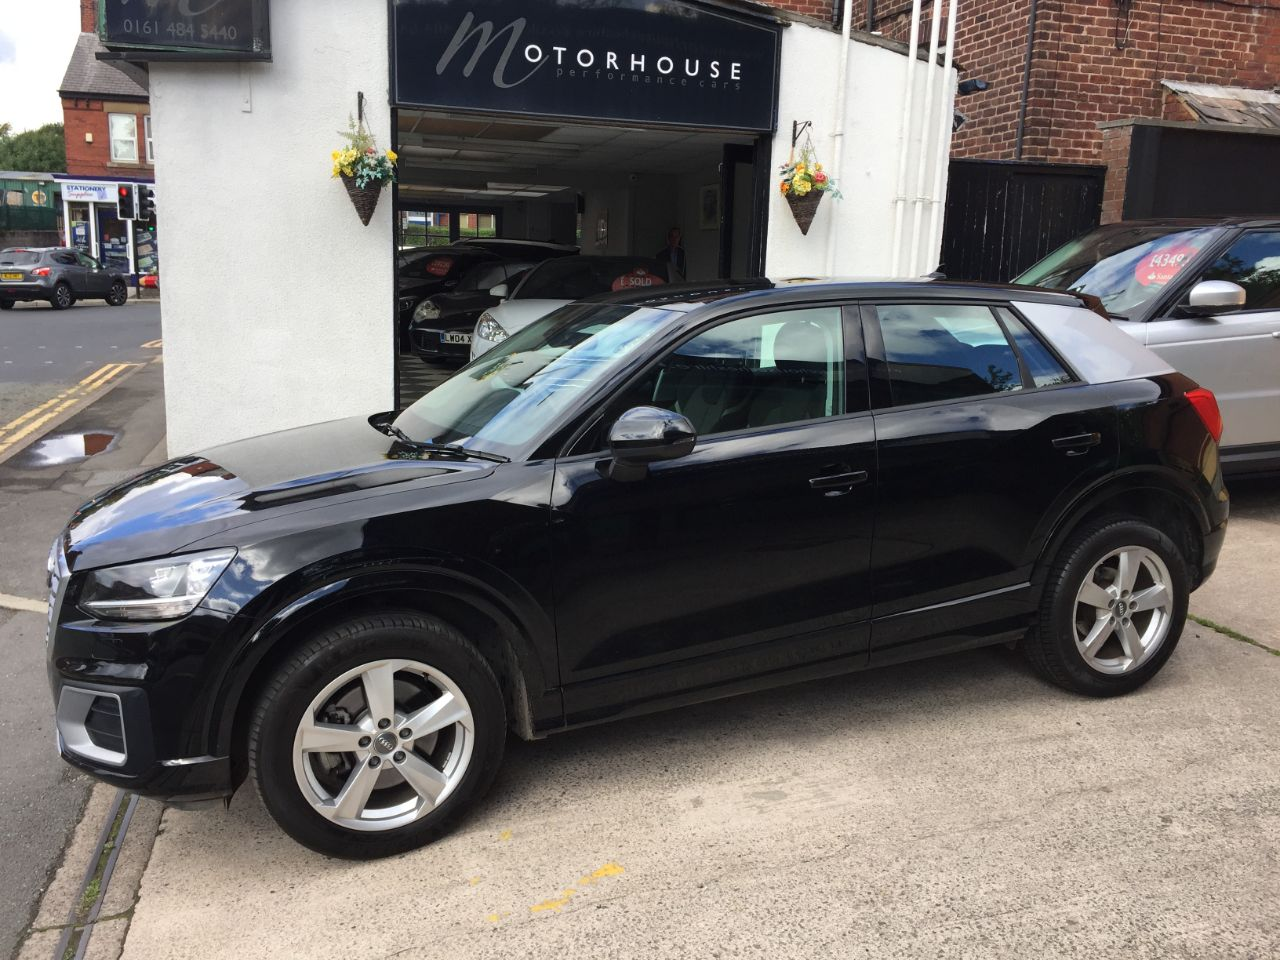 Audi Q2 1.6 TDI Sport 5dr Estate Diesel Black at Motorhouse Cheshire Stockport